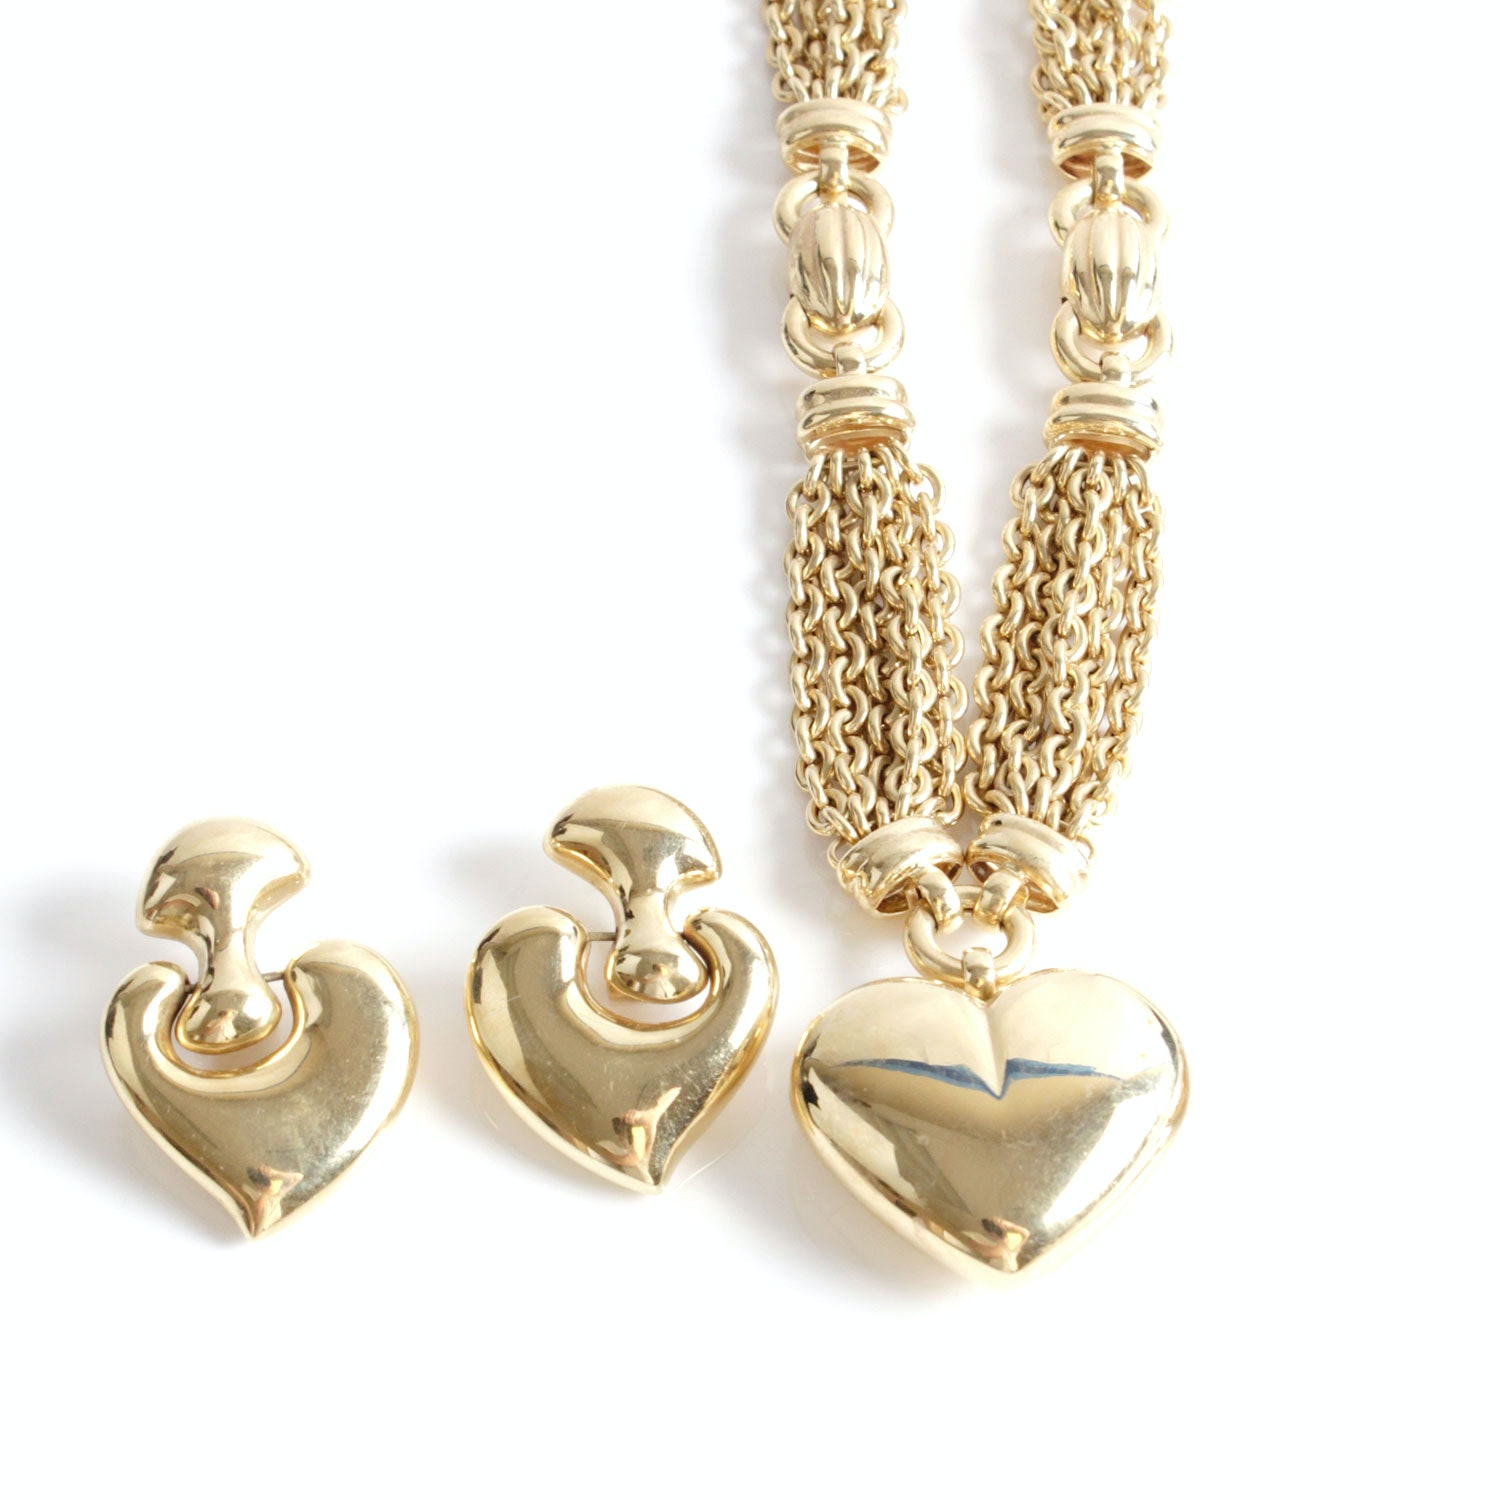 Giulio Marotto 18K Yellow Gold Heart Necklace and Earrings